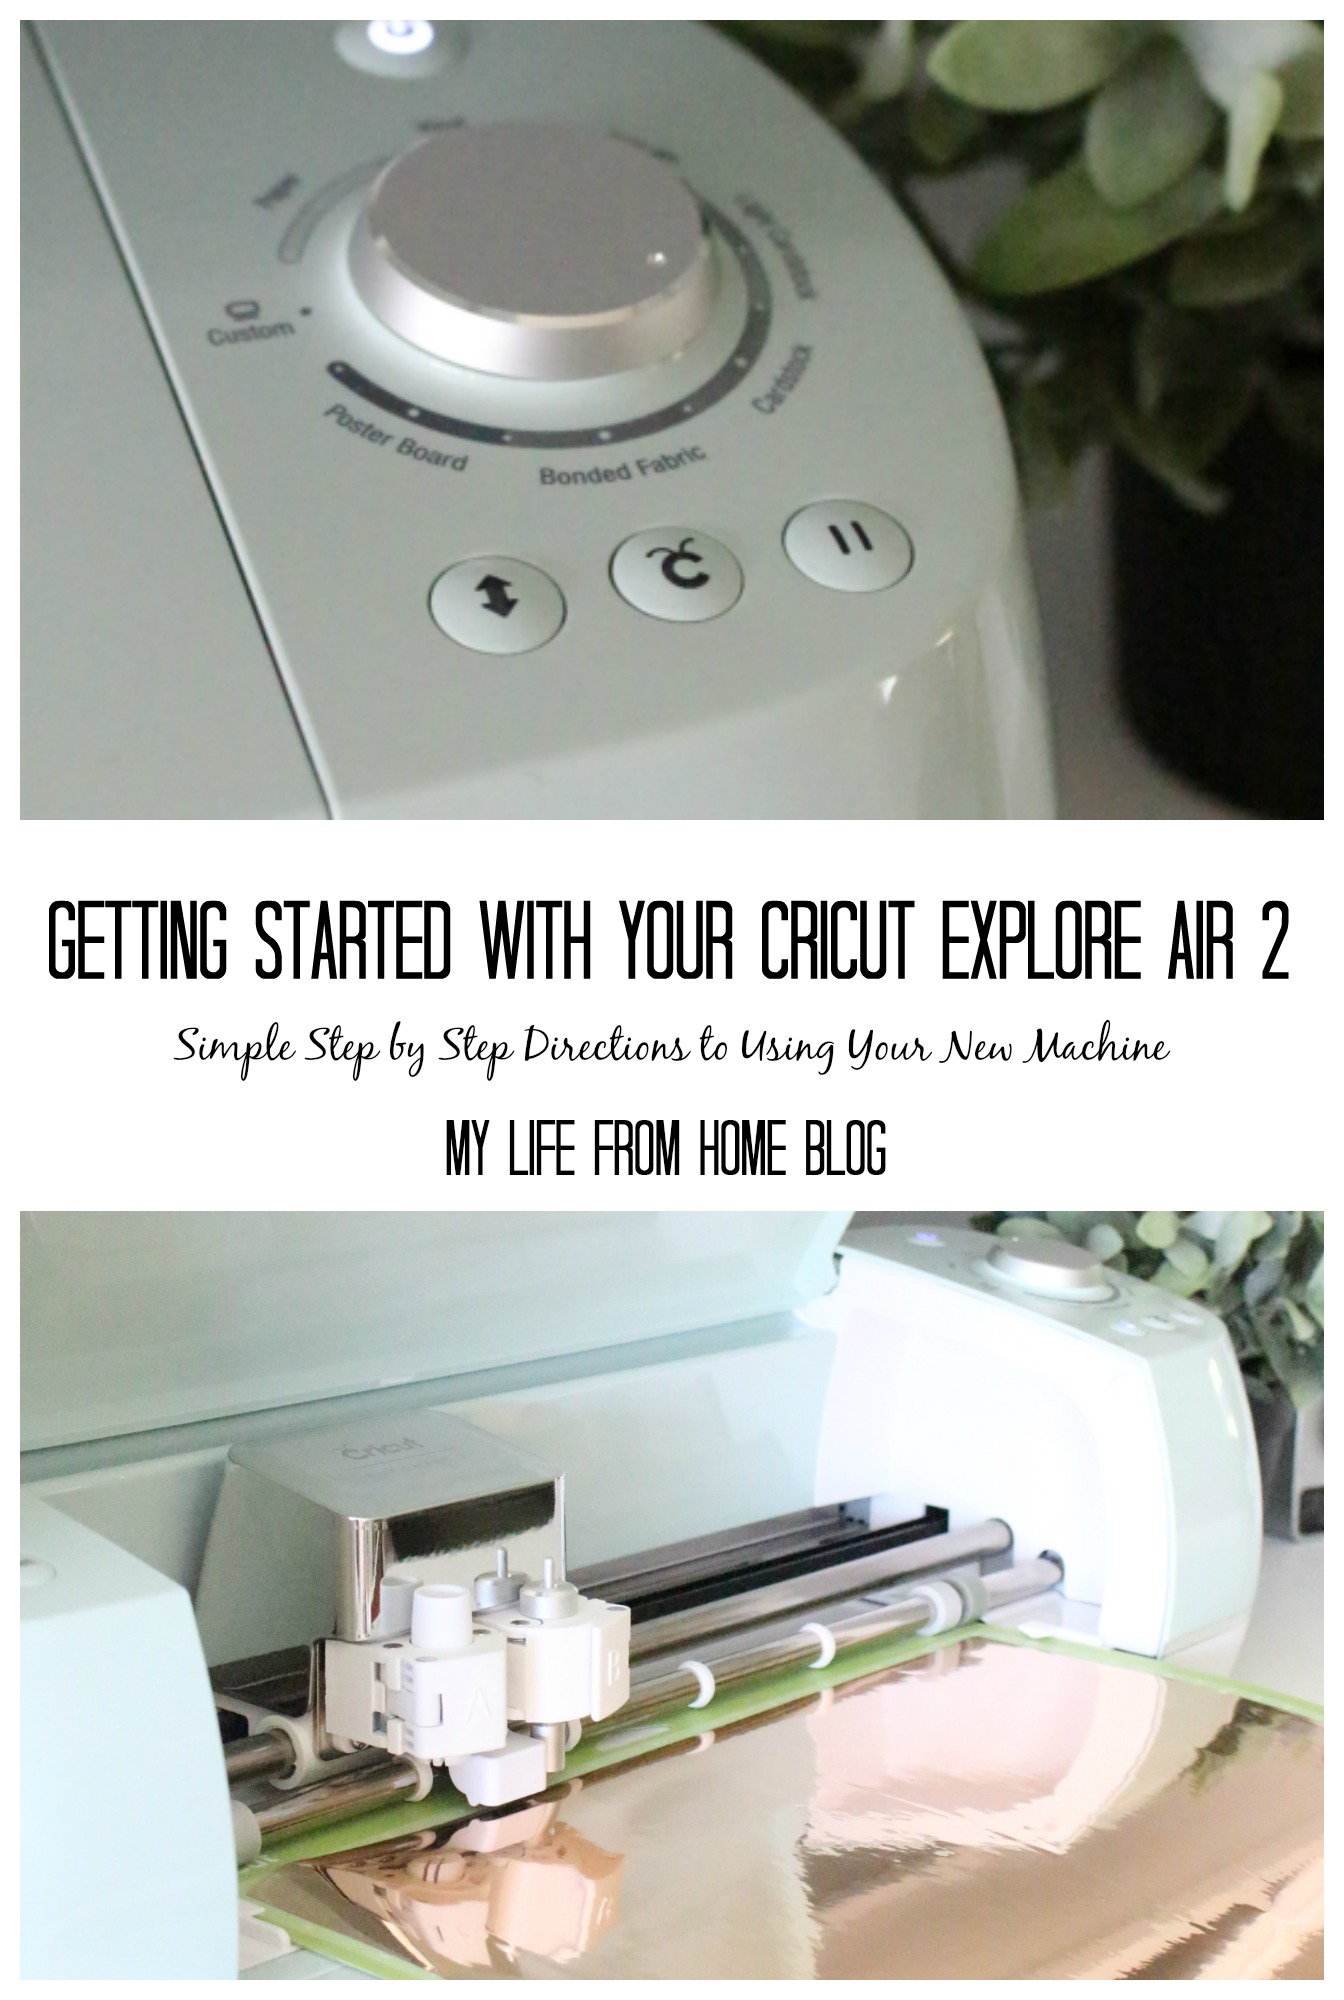 Cricut Explore Air 2- getting started- Cricut- die cut machine- cutting machine- crafting- tools- how to- directions